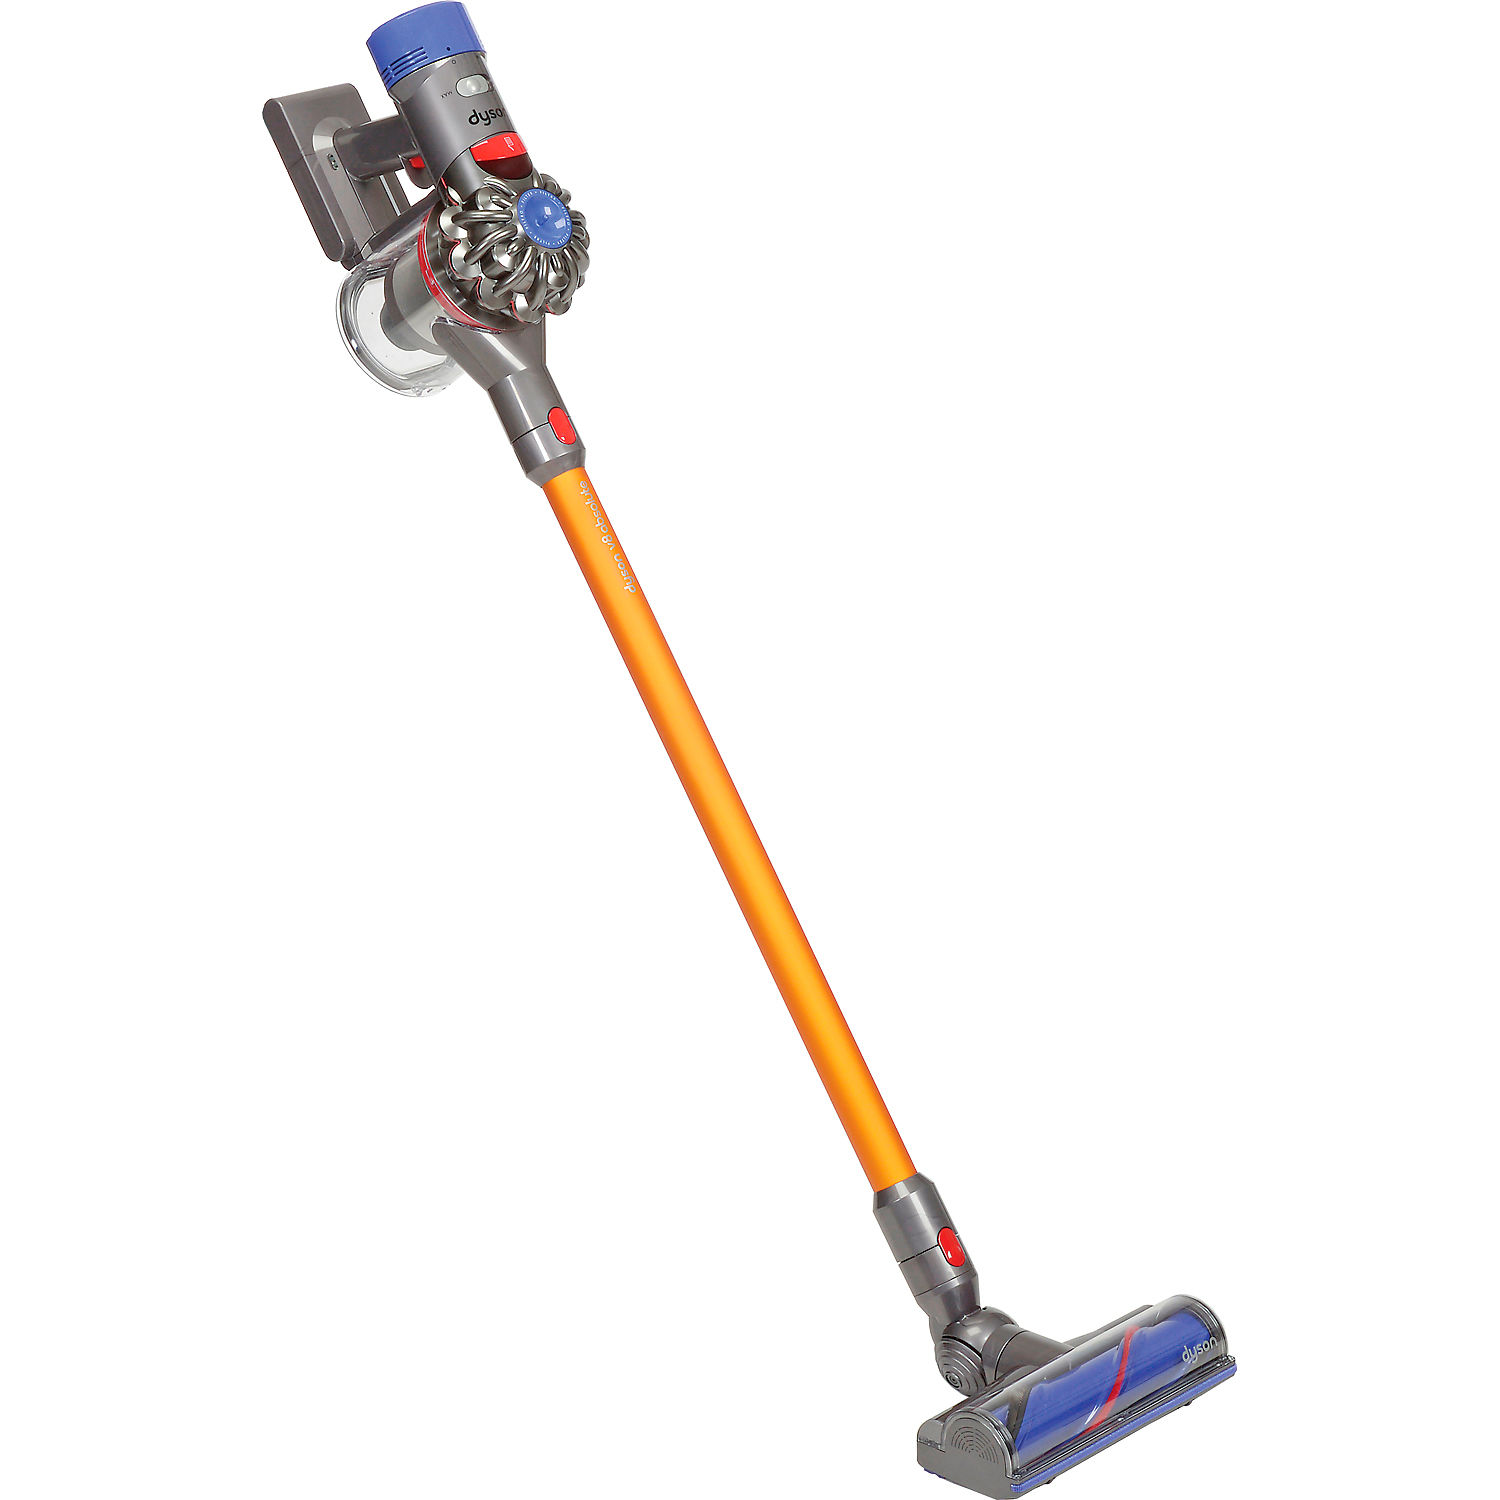 Floor Care Machines Vacuums Vacuums Stick Sweeping Dyson V8 Absolute Stick Vacuum 214730 01 641372 Globalindustrial Com